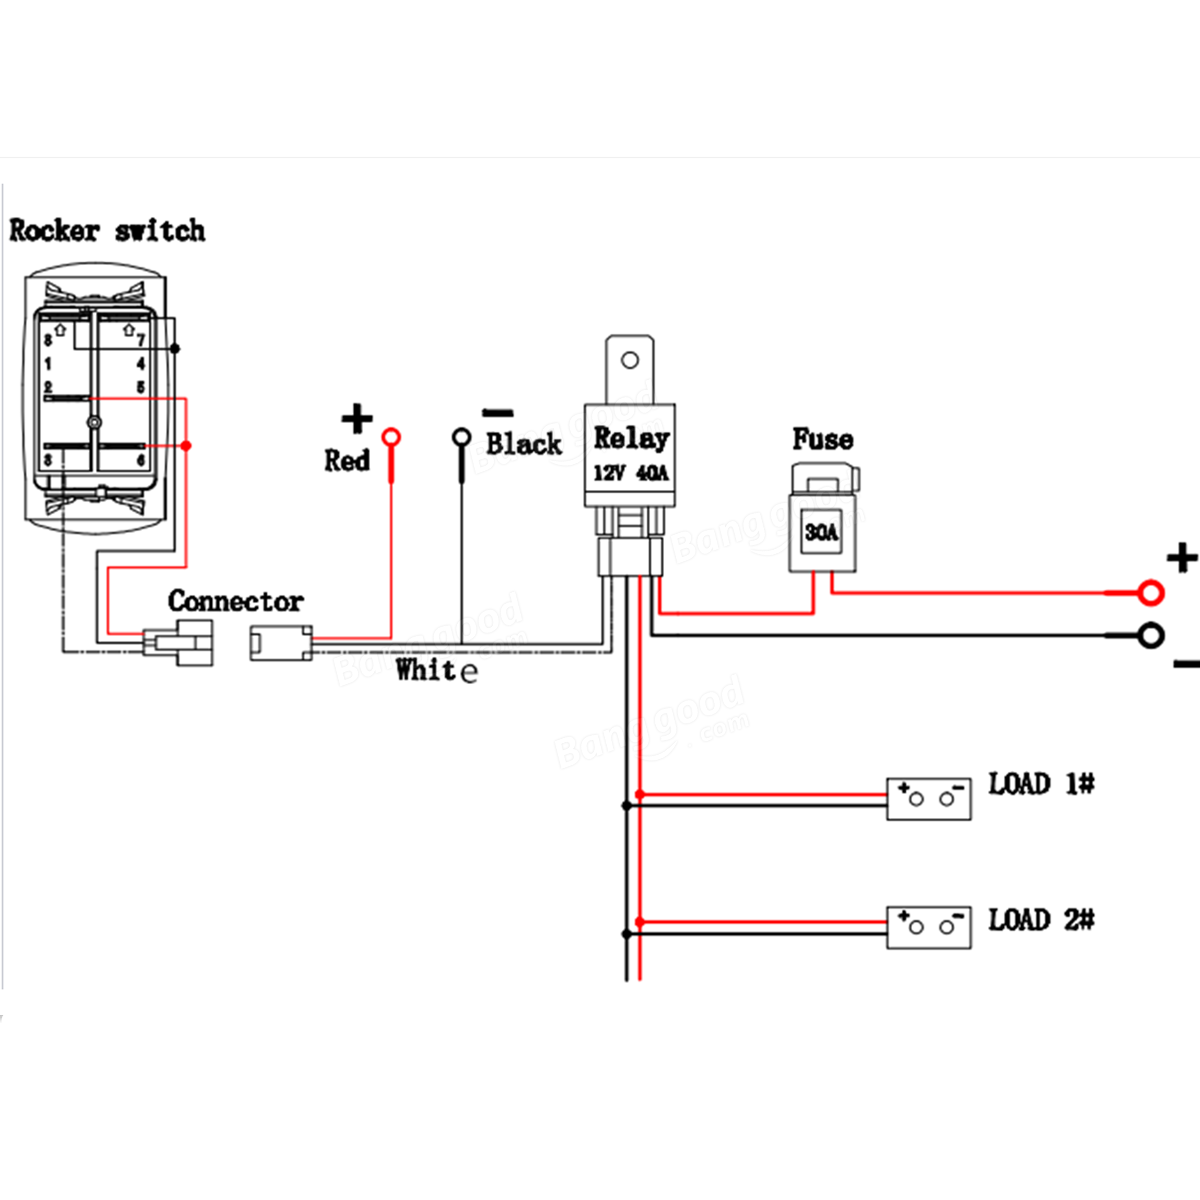 9d6bacef 8f68 448c b477 28191a6abe22 12 v 40a wiring harness 1990 toyota pickup wiring harness \u2022 wiring led light wiring diagram at soozxer.org